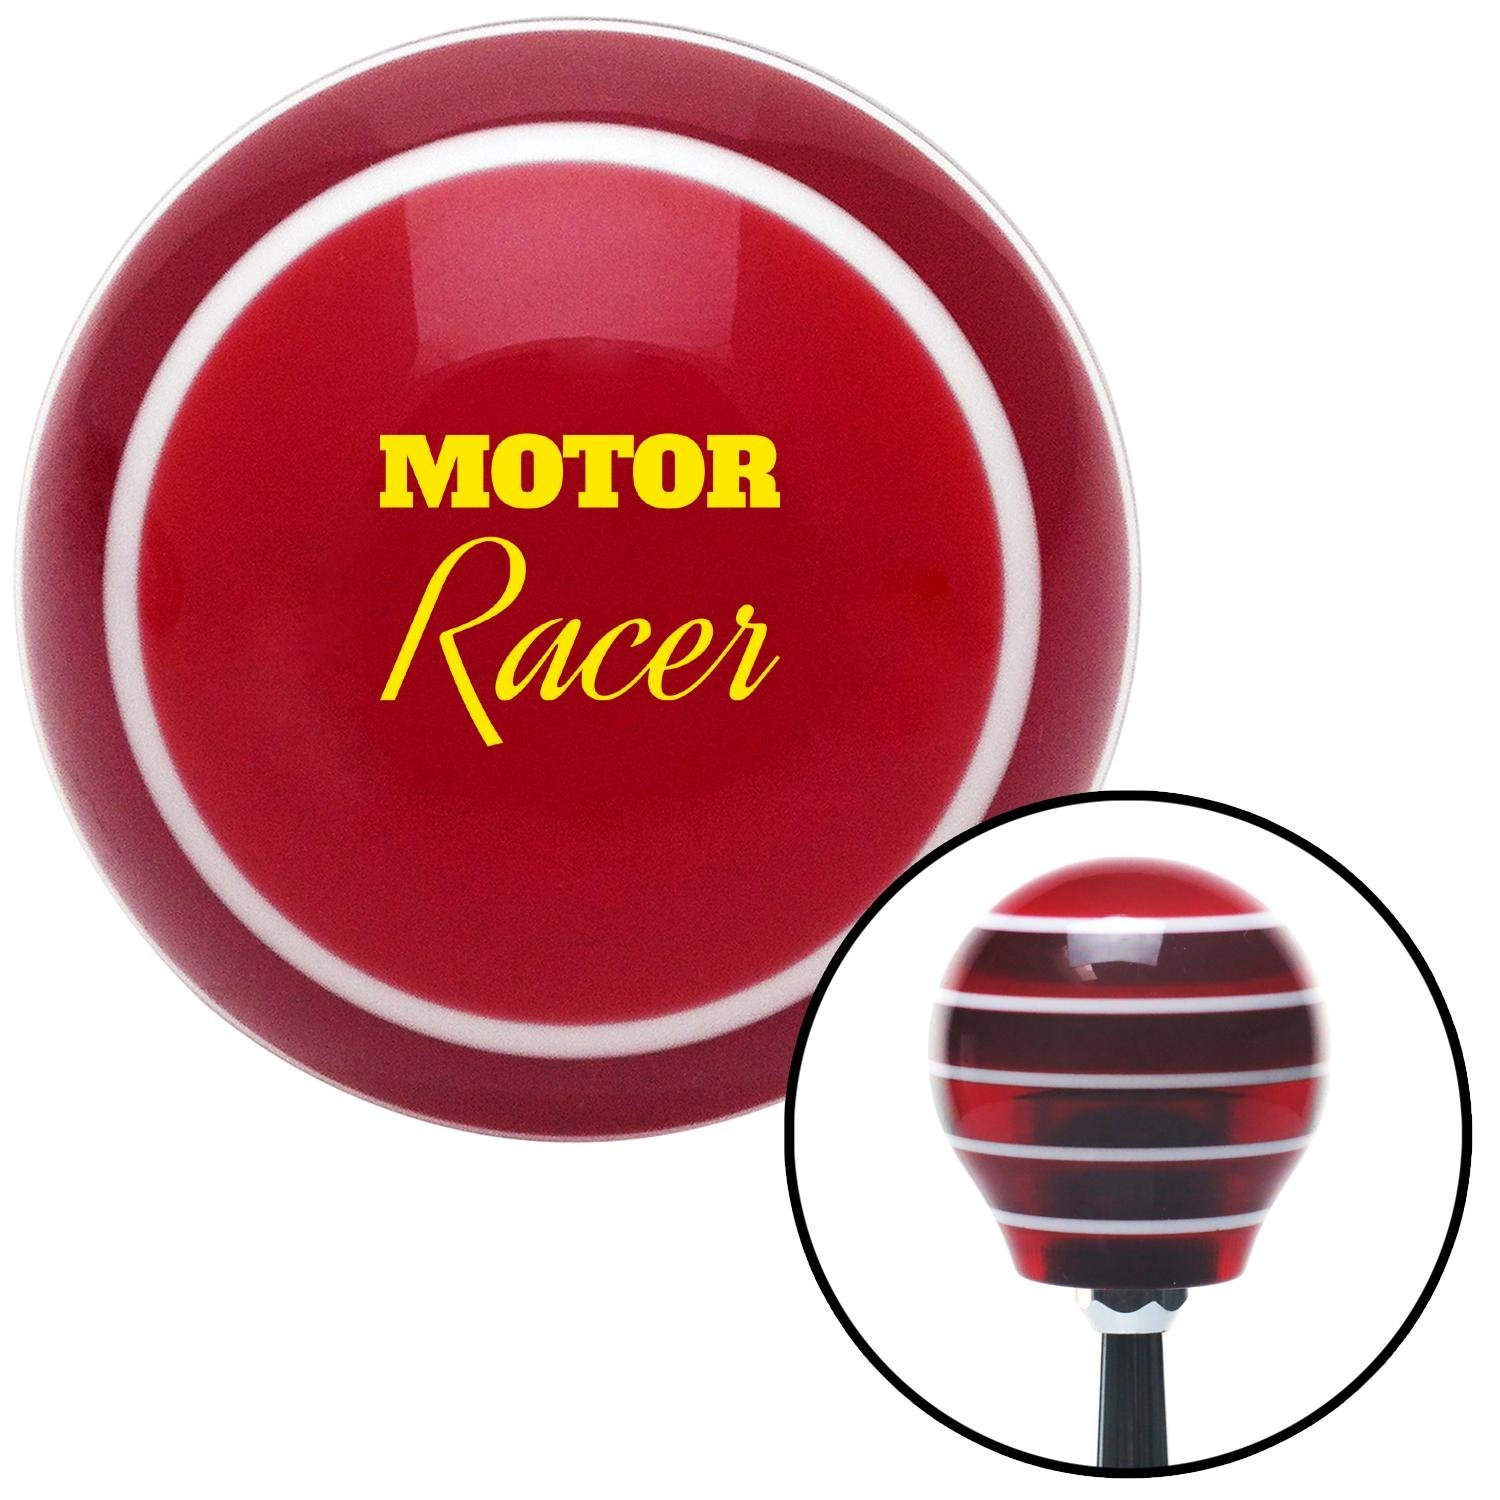 American Shifter 274593 Shift Knob Yellow Motor Racer Red Stripe with M16 x 1.5 Insert